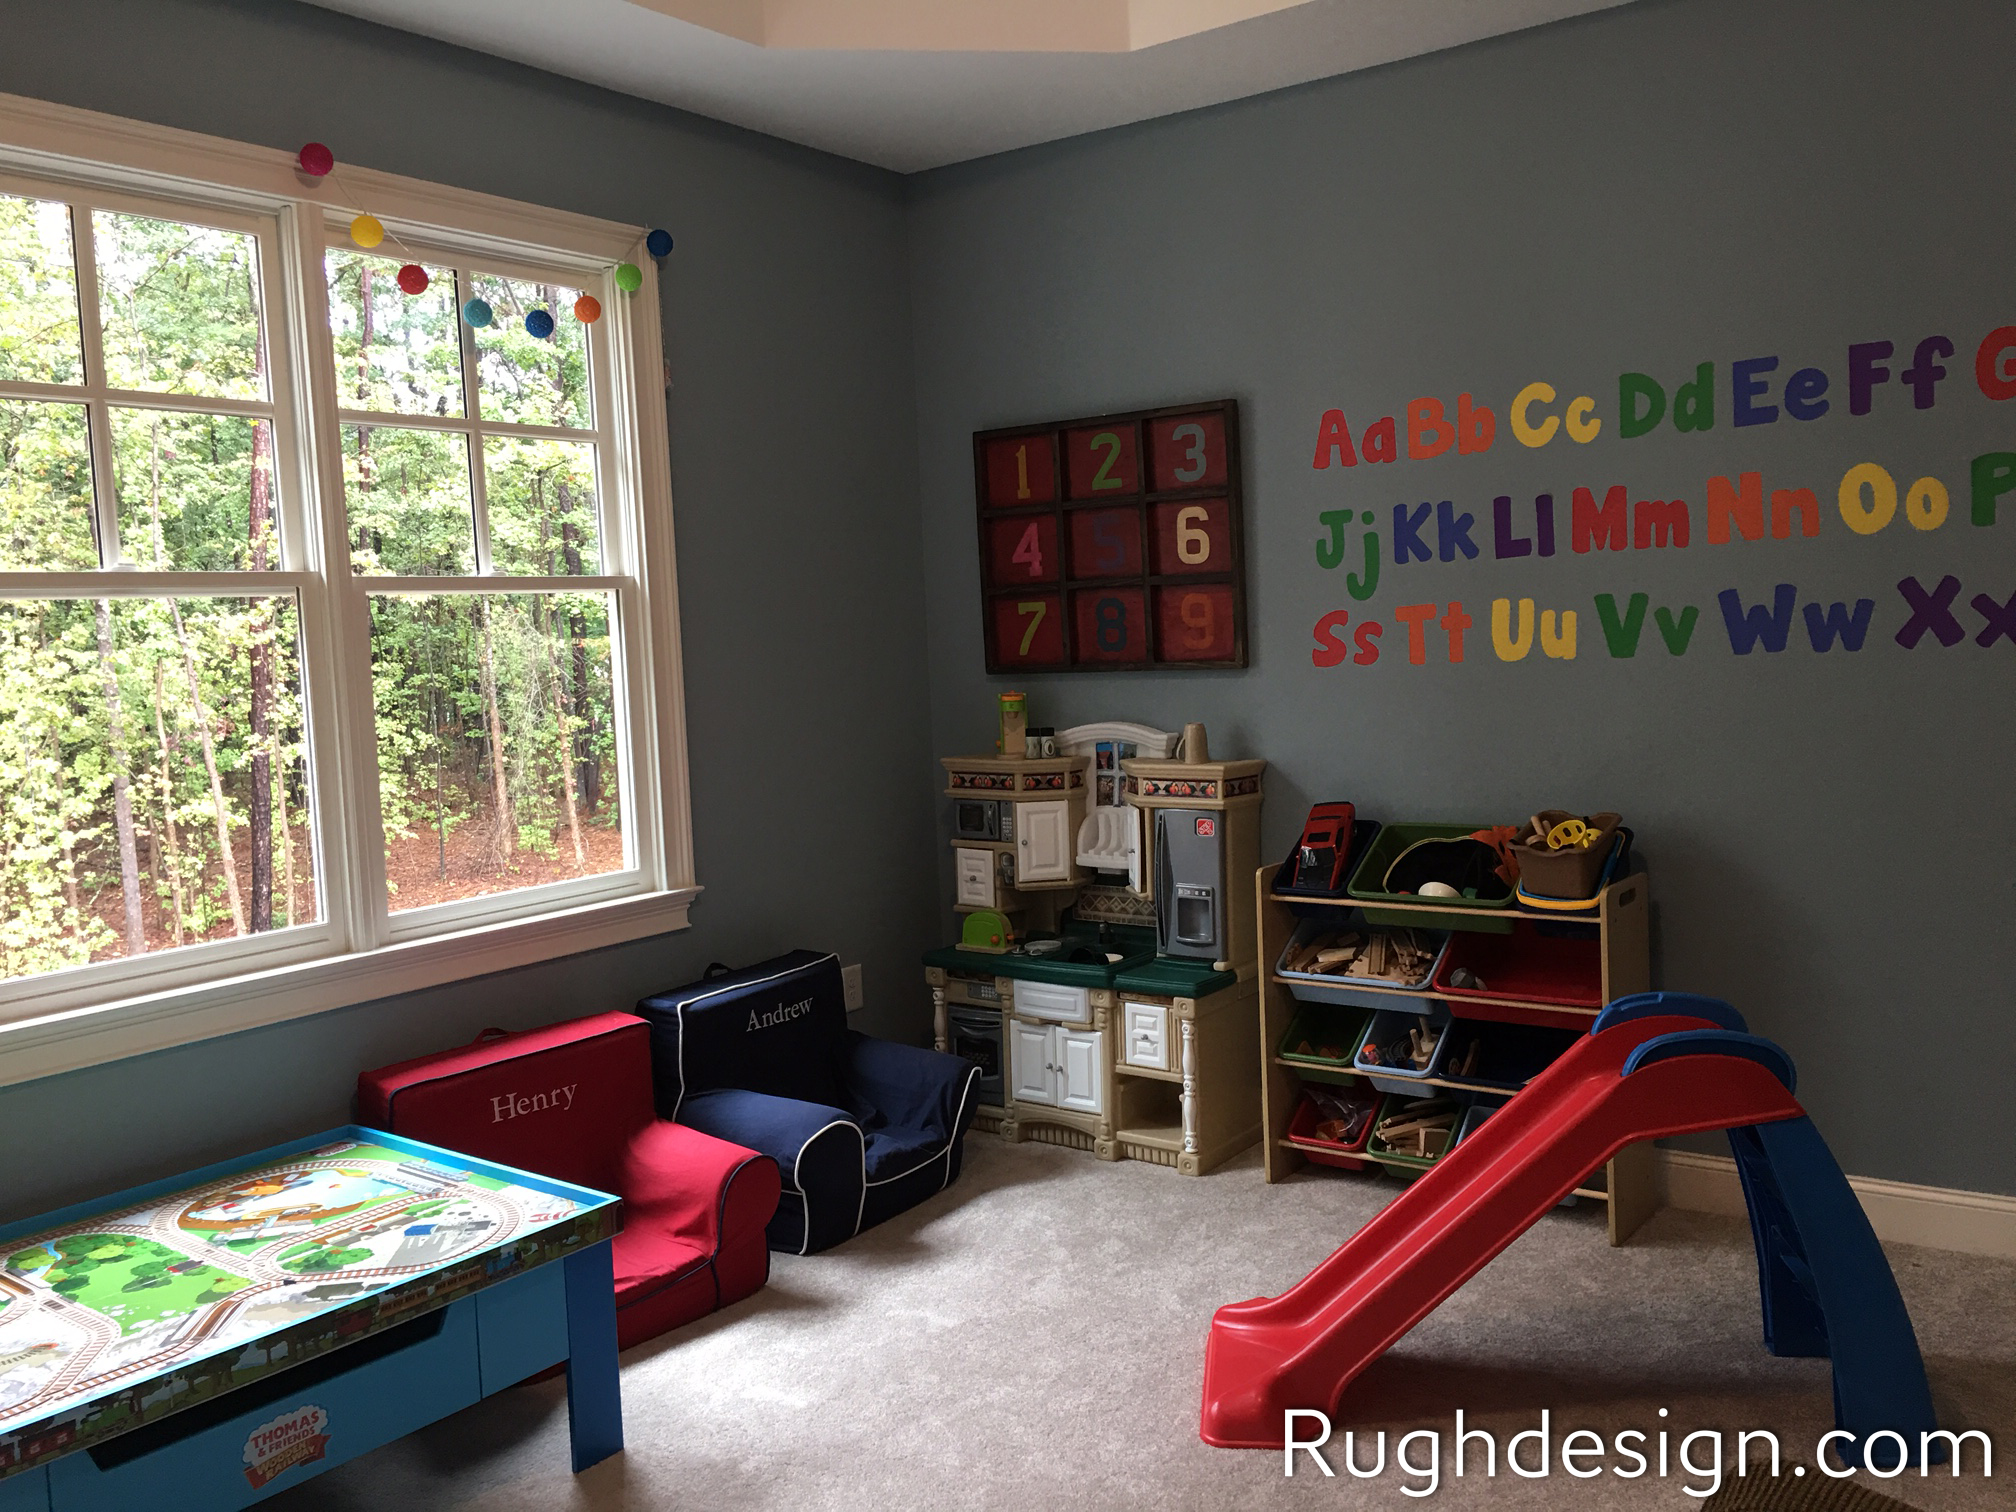 Meditative SW 6227 in playroom